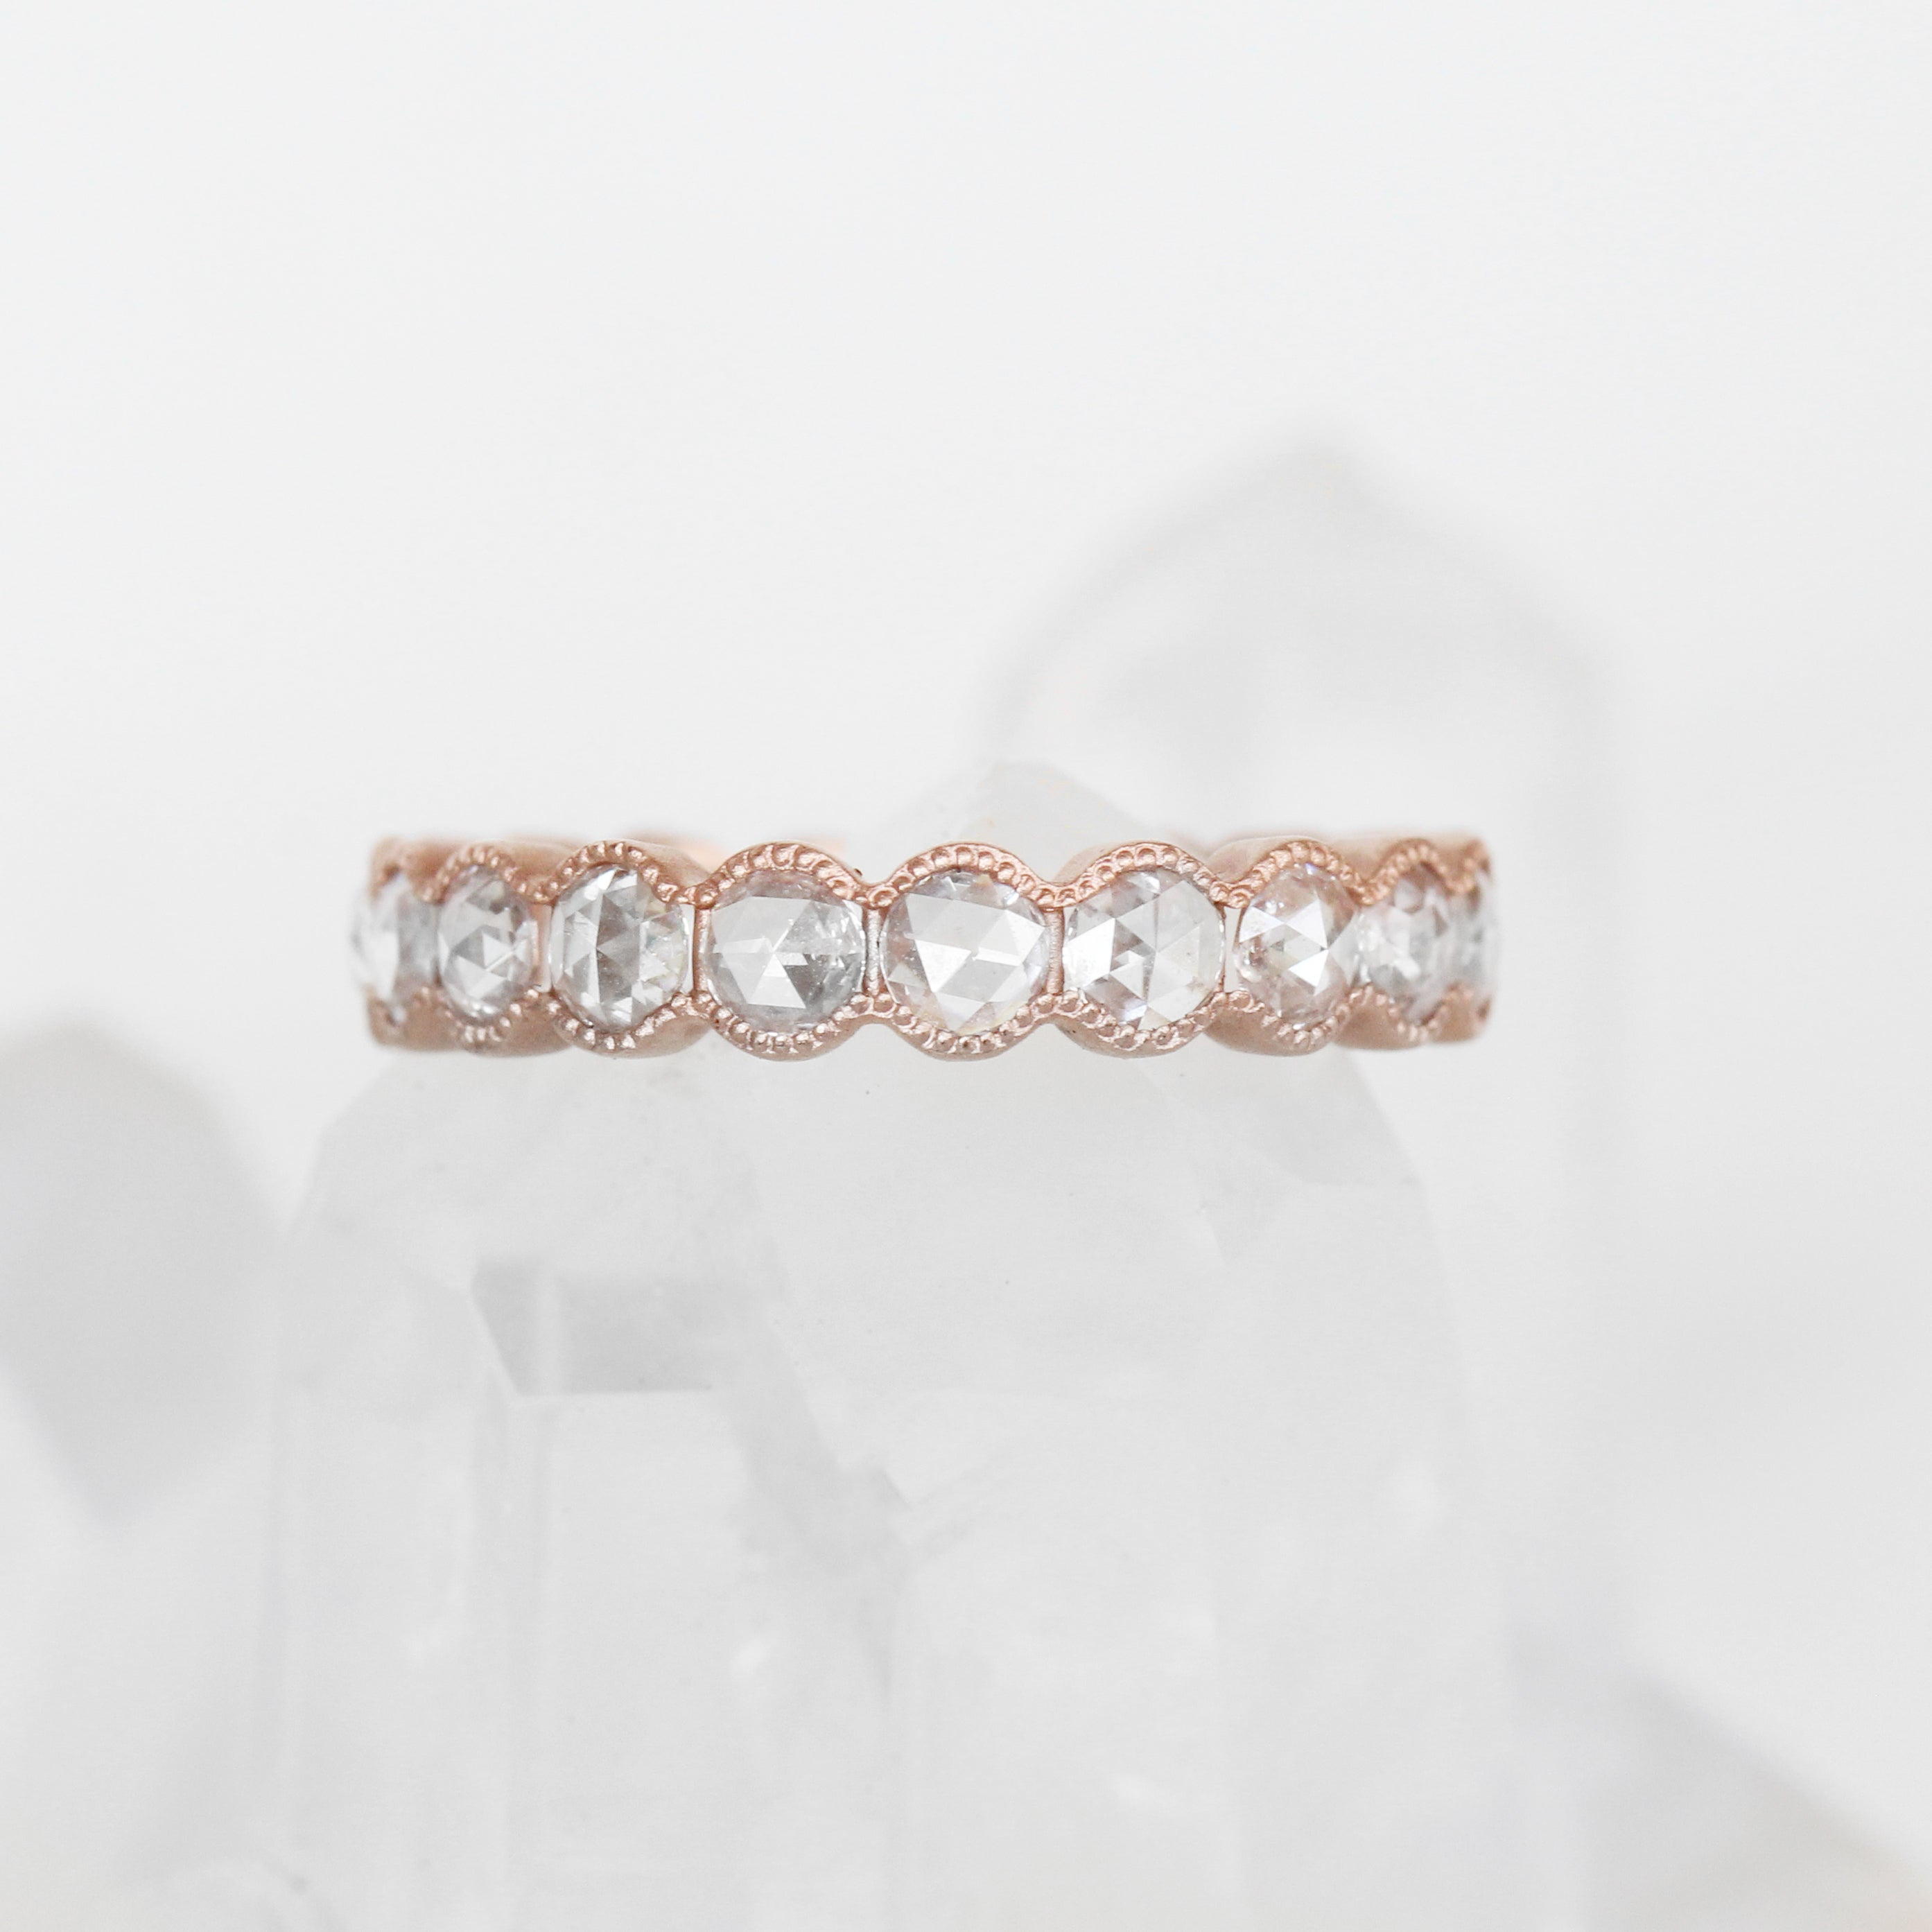 Penelope Rose Cut Milgrain Antique Style Bezel Diamond Engagement Ring Band - Salt & Pepper Celestial Diamond Engagement Rings and Wedding Bands  by Midwinter Co.